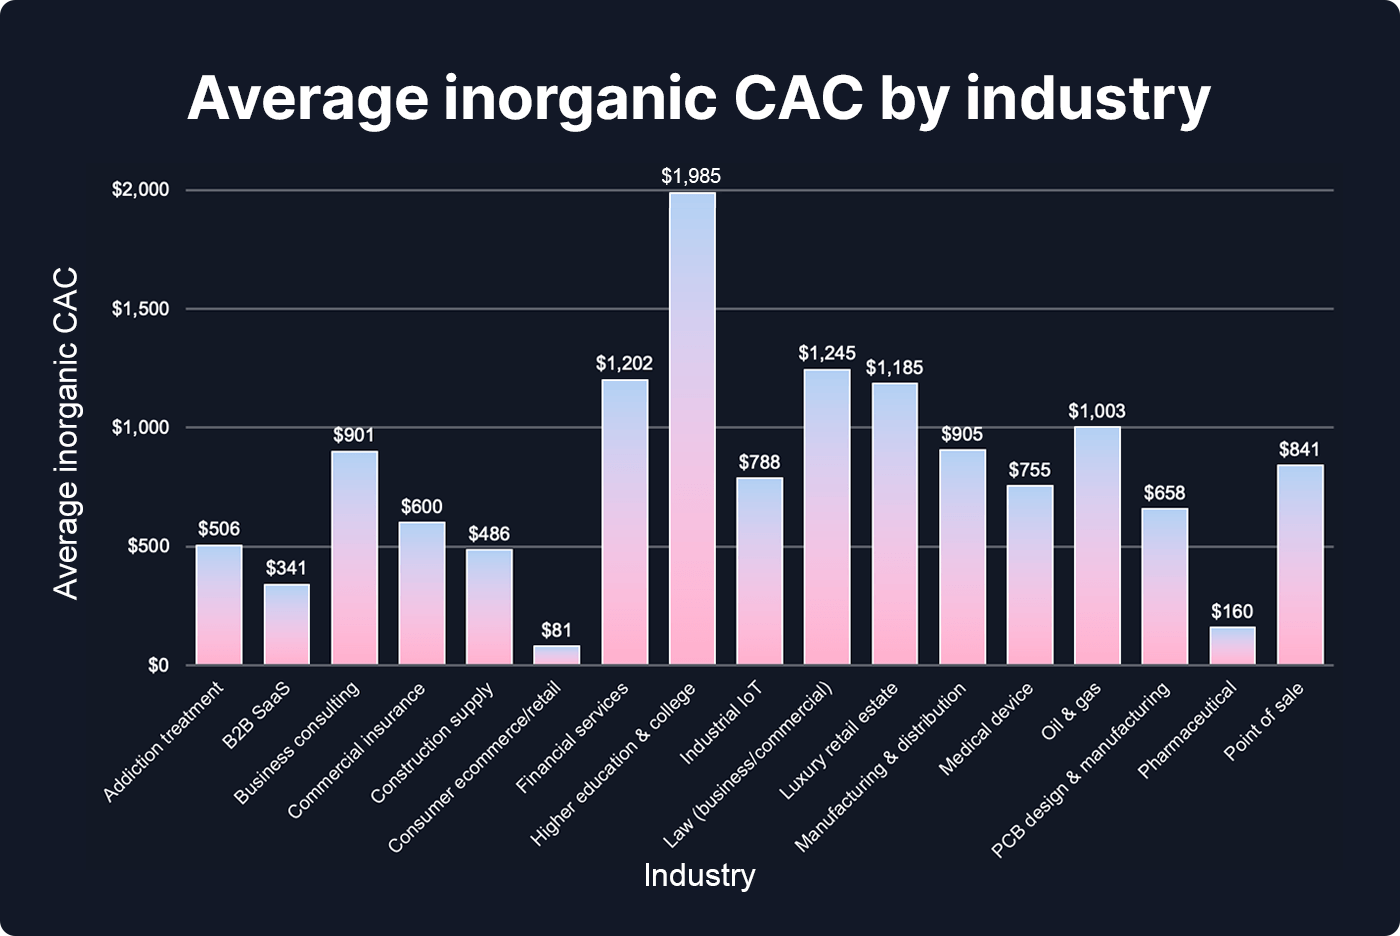 Chart showing the average inorganic CAC by industry